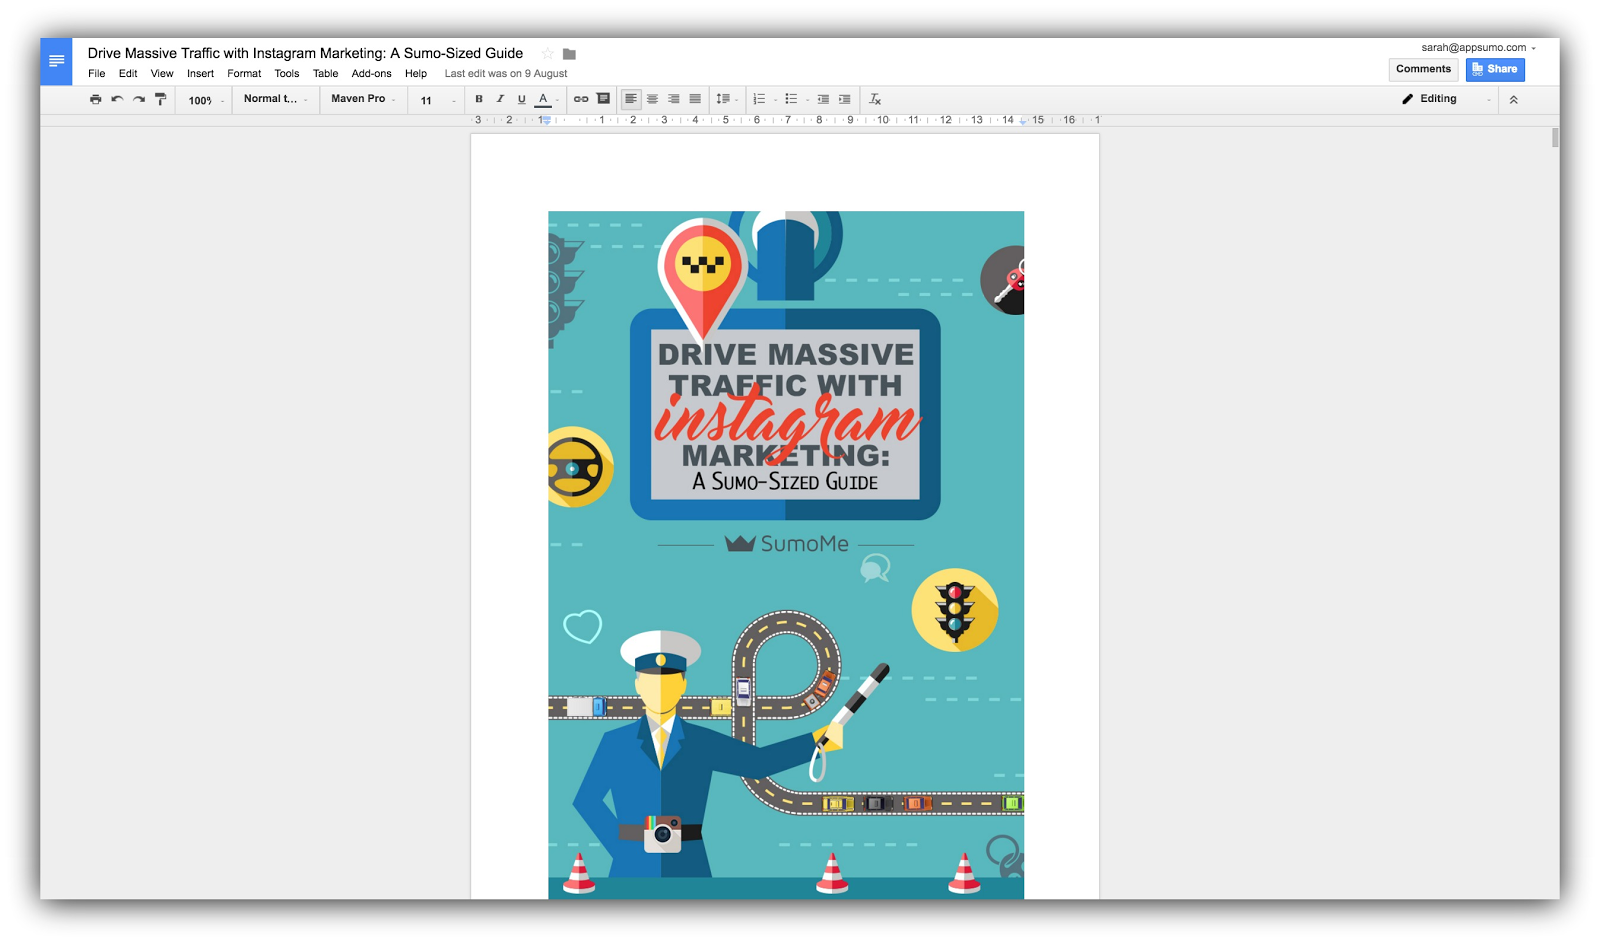 Download Your New Ebook As A Pdf To Give Away